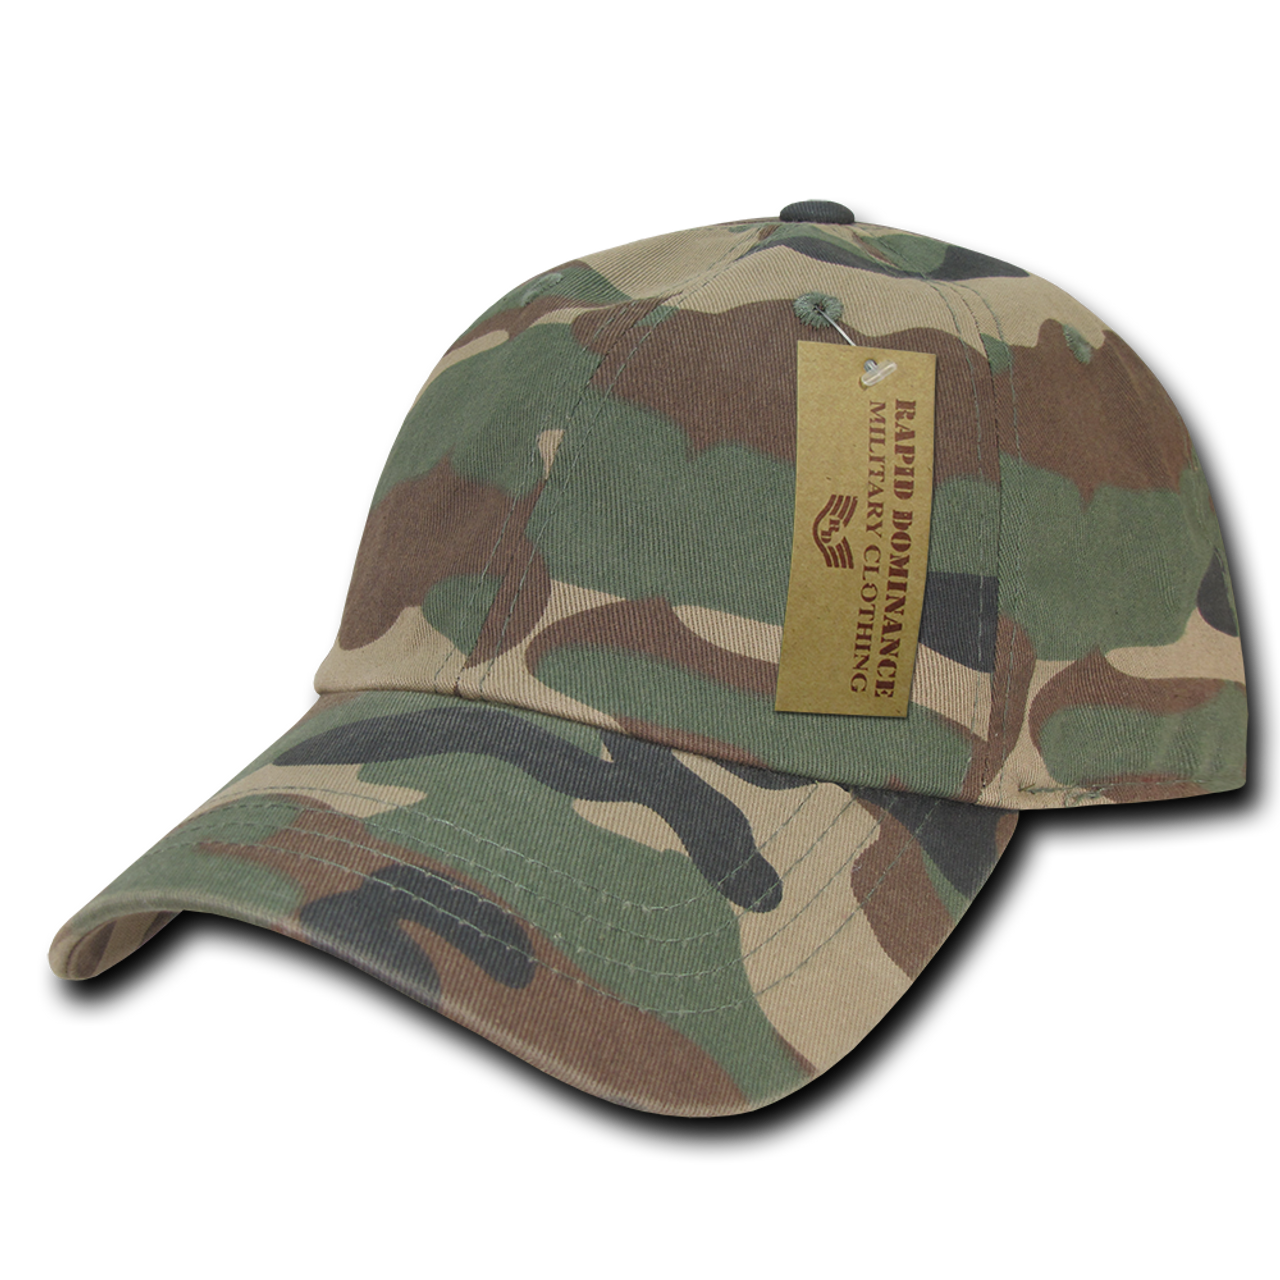 373f07a01 R830 - Relaxed Cotton Polo Cap - Vintage Washed - Woodland Camo